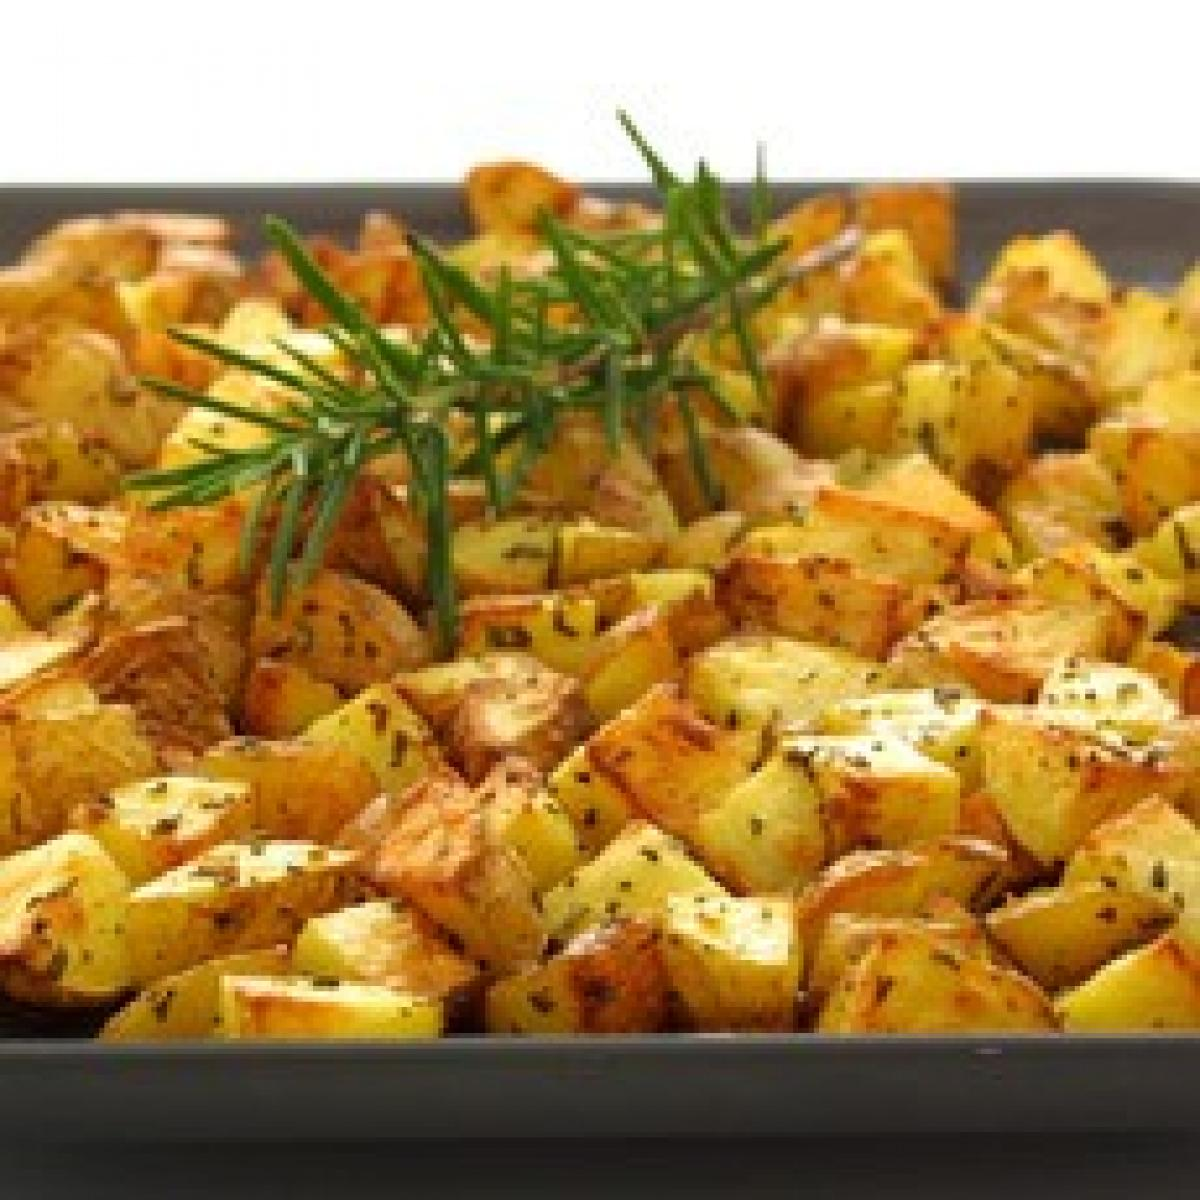 Su078 oven roast potatoes3 20243